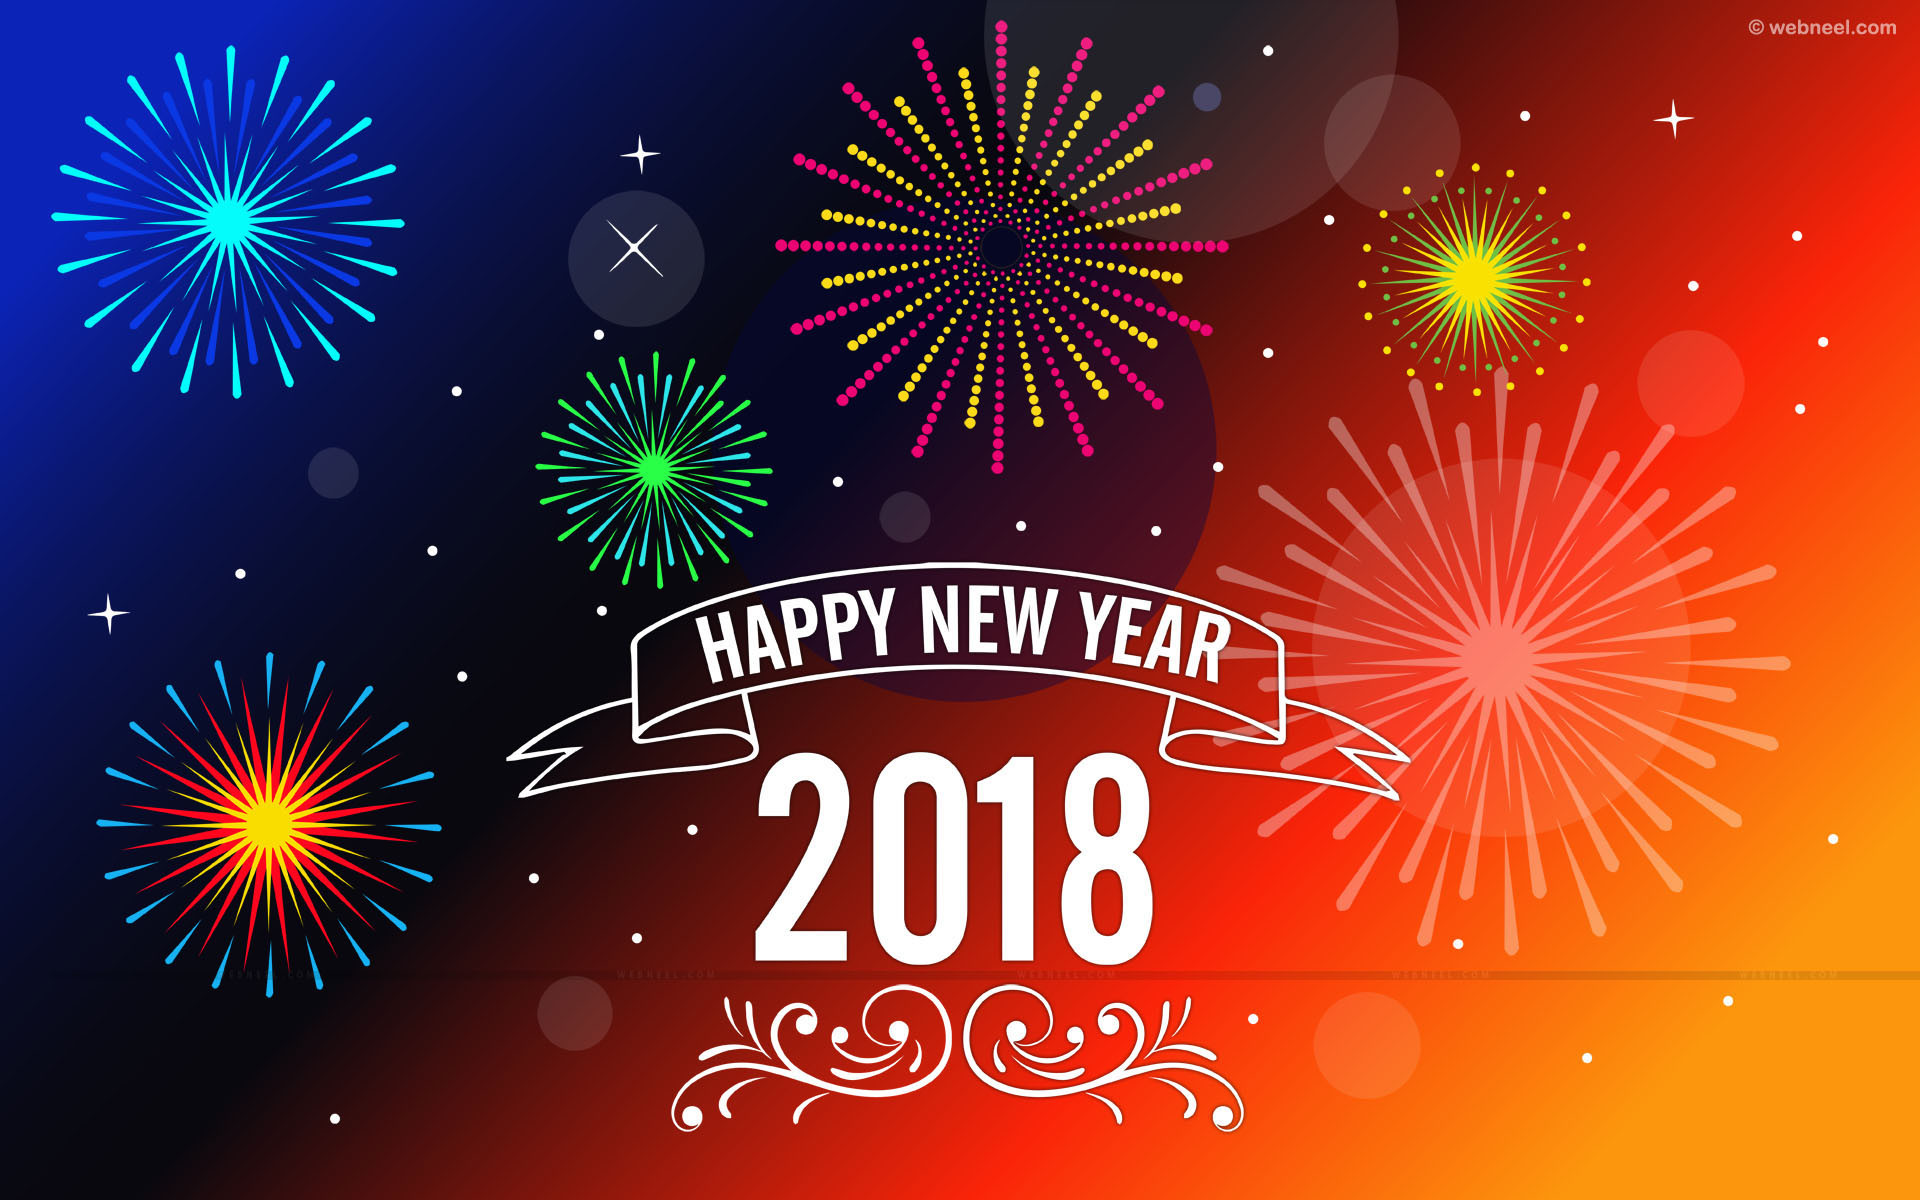 New Happy New Year 2018 Wallpaper 78 Images HD Wallpapers Download Free Images Wallpaper [1000image.com]